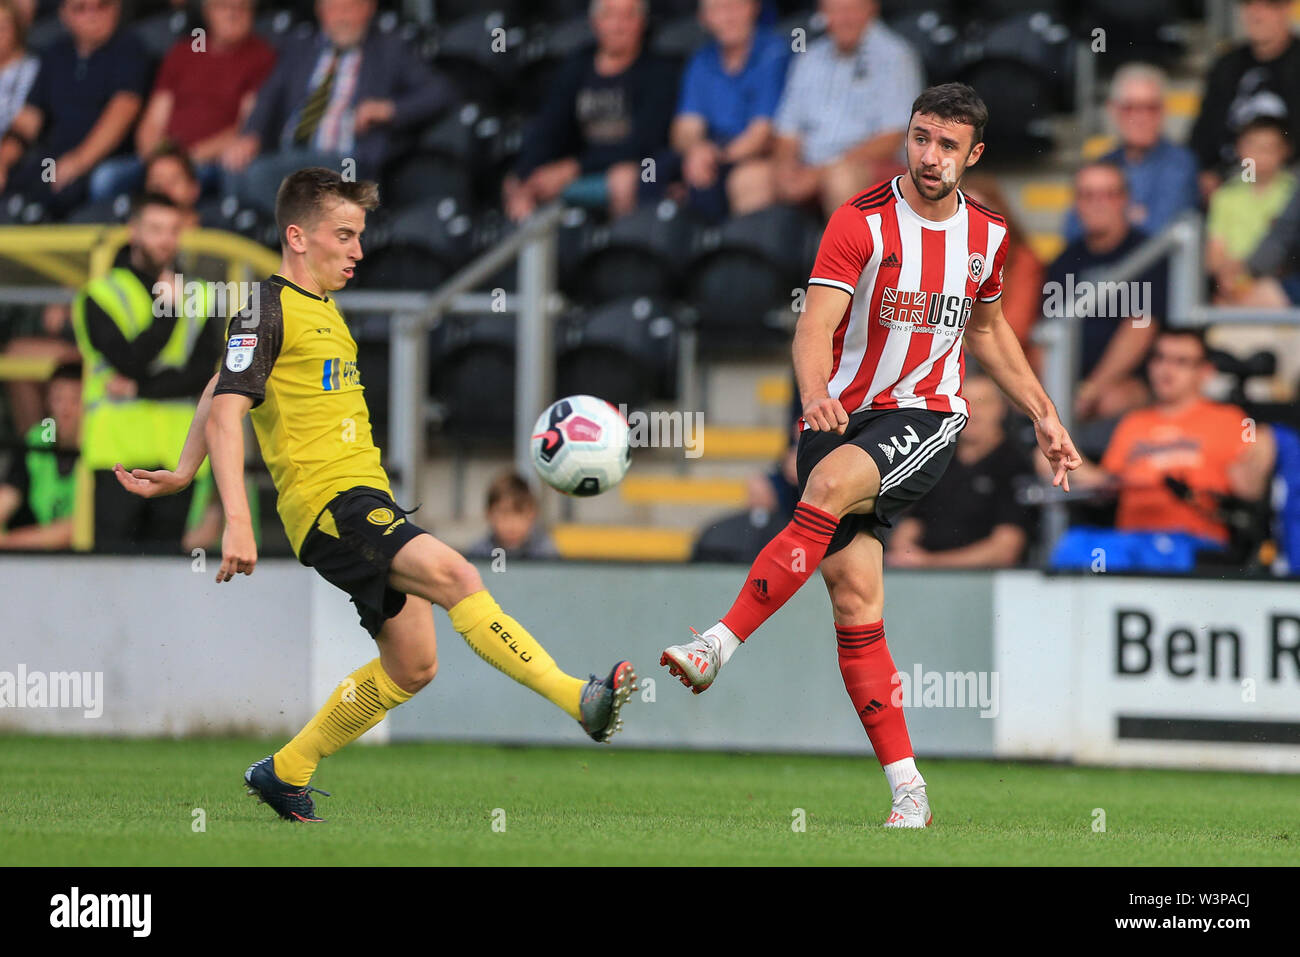 16th July 2019, Pirelli Stadium, Burton upon Trent, England; Pre-Season friendly, Burton Albion vs Sheffield United : Enda Stevens of Sheffield United clears the ball  Credit: Mark Cosgrove/News Images  English Football League images are subject to DataCo Licence - Stock Image